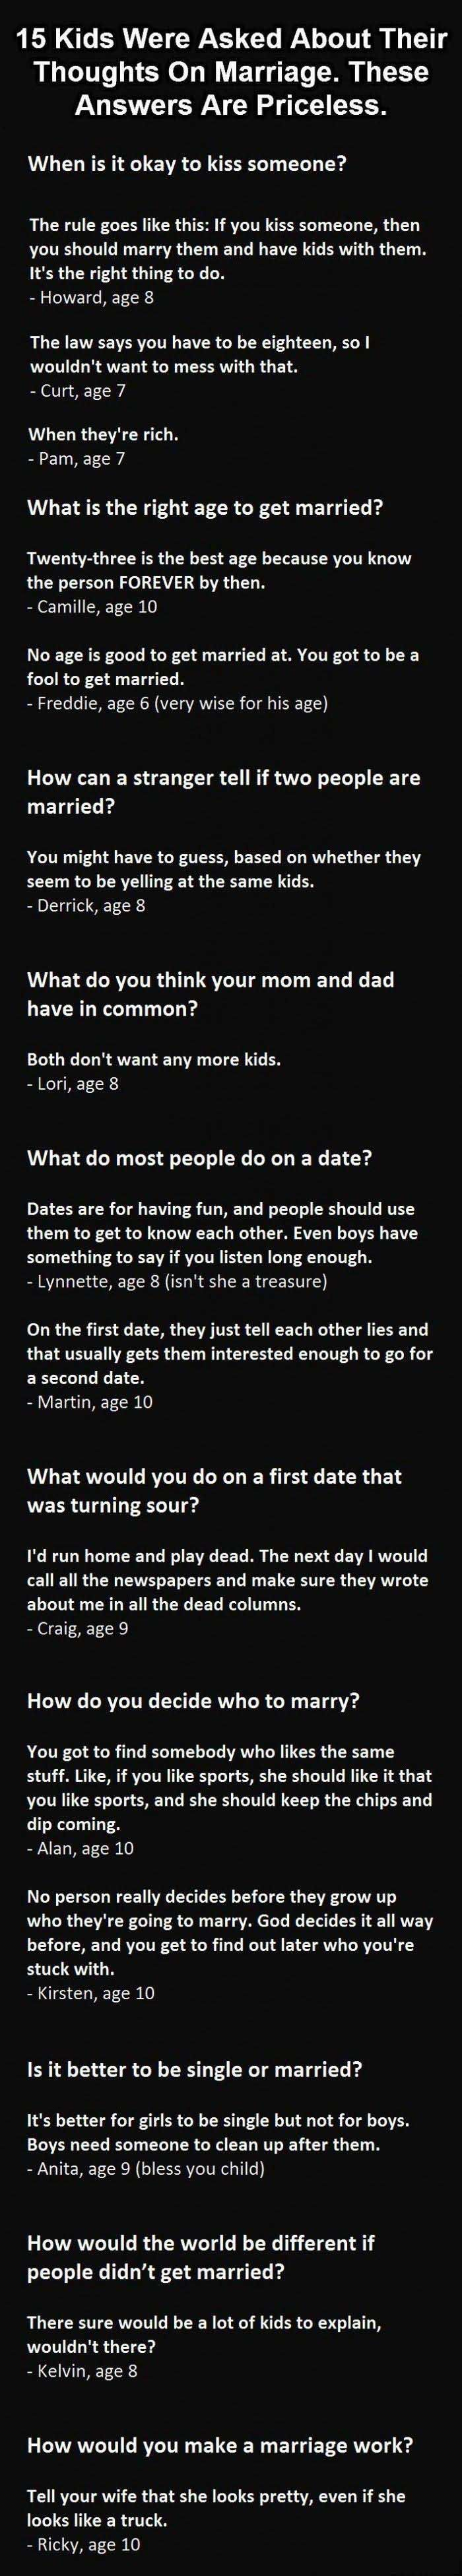 15 Kids Were Asked About Marriage And Love, Their Responses Are Hilarious!